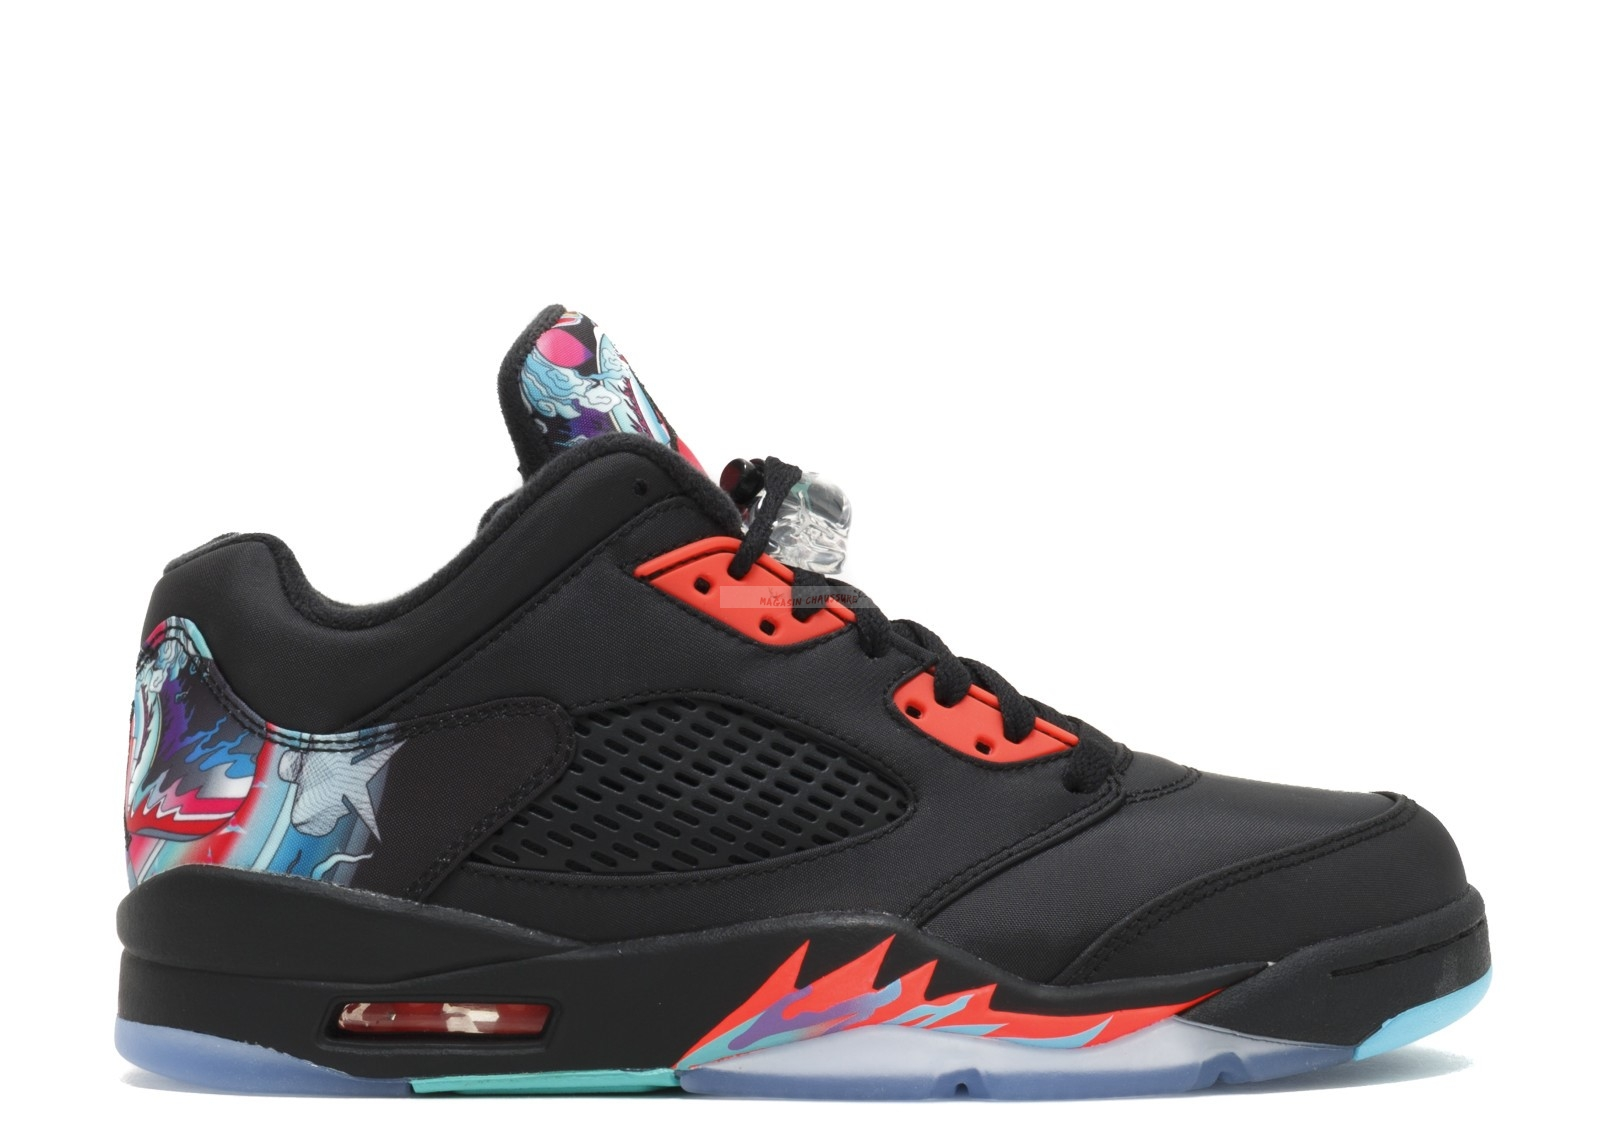 "Air Jordan 5 Retro Low Cny ""Chinese New Year"" Noir (840475-060) Chaussure de Basket"